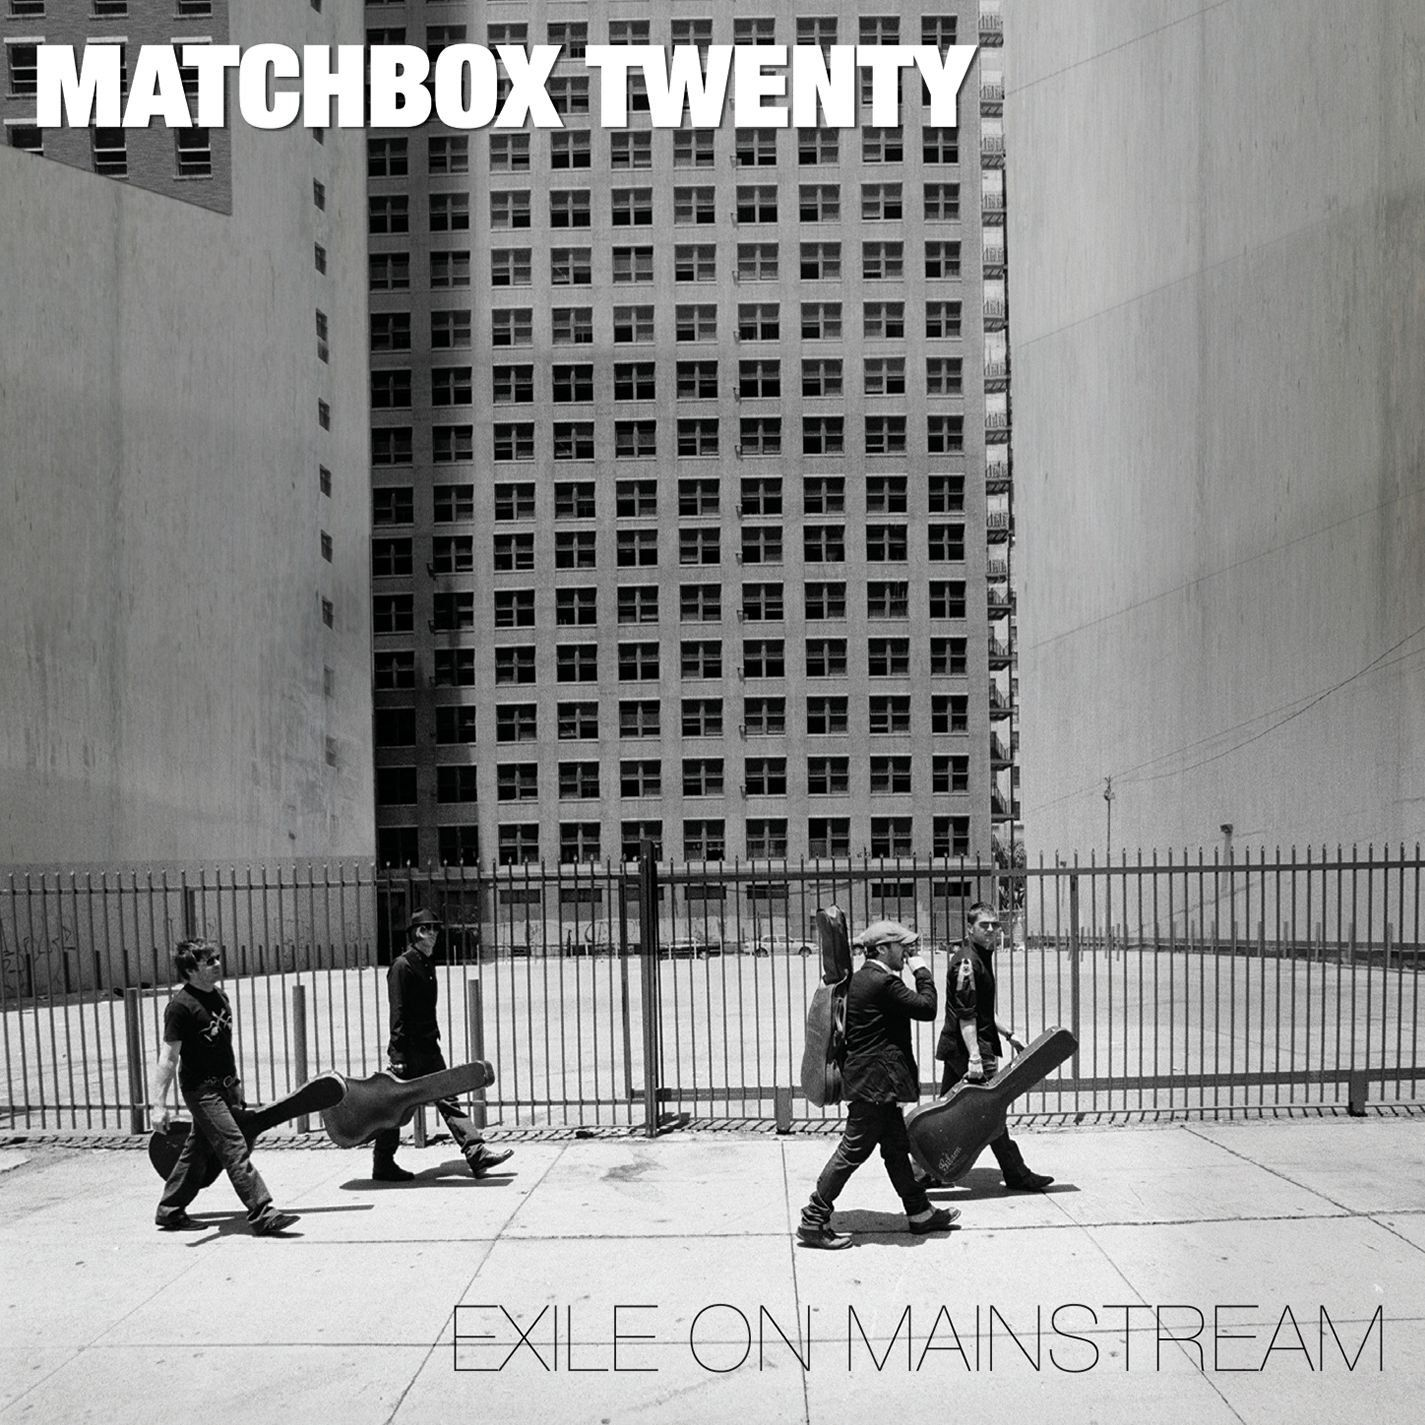 Matchbox Twenty - Exile On Mainstream album cover